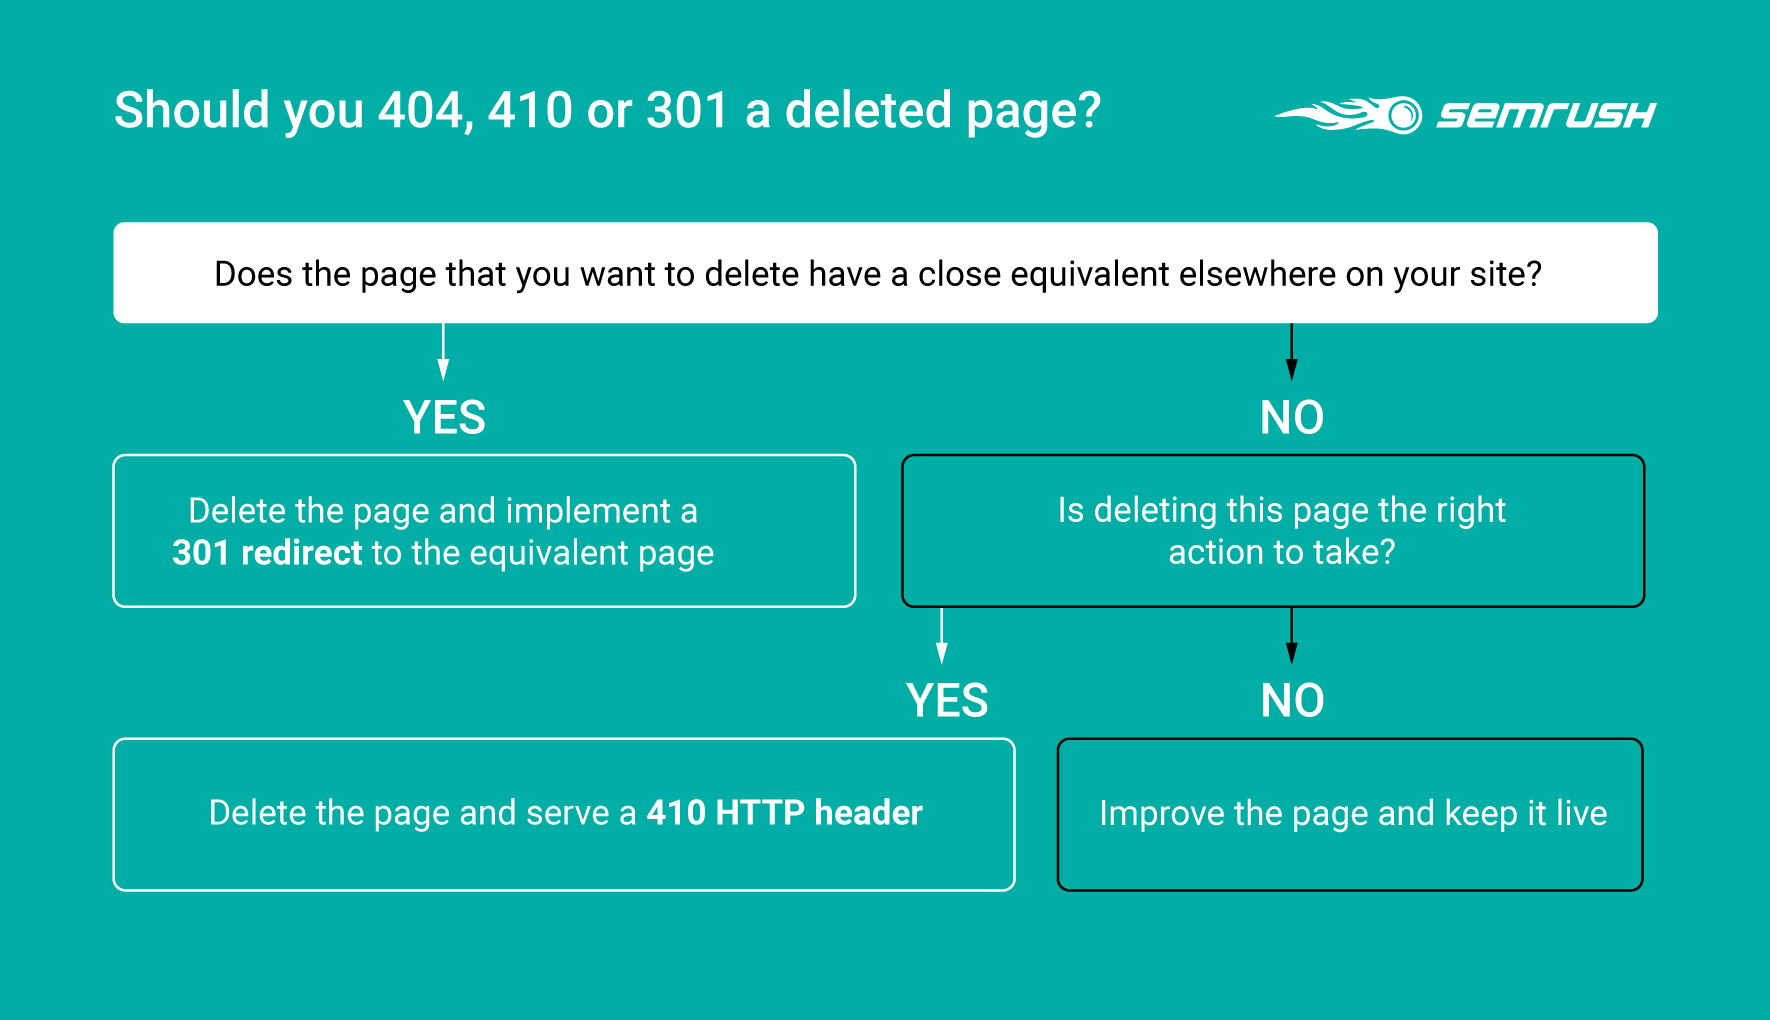 delete page 301 flowchart for redirects